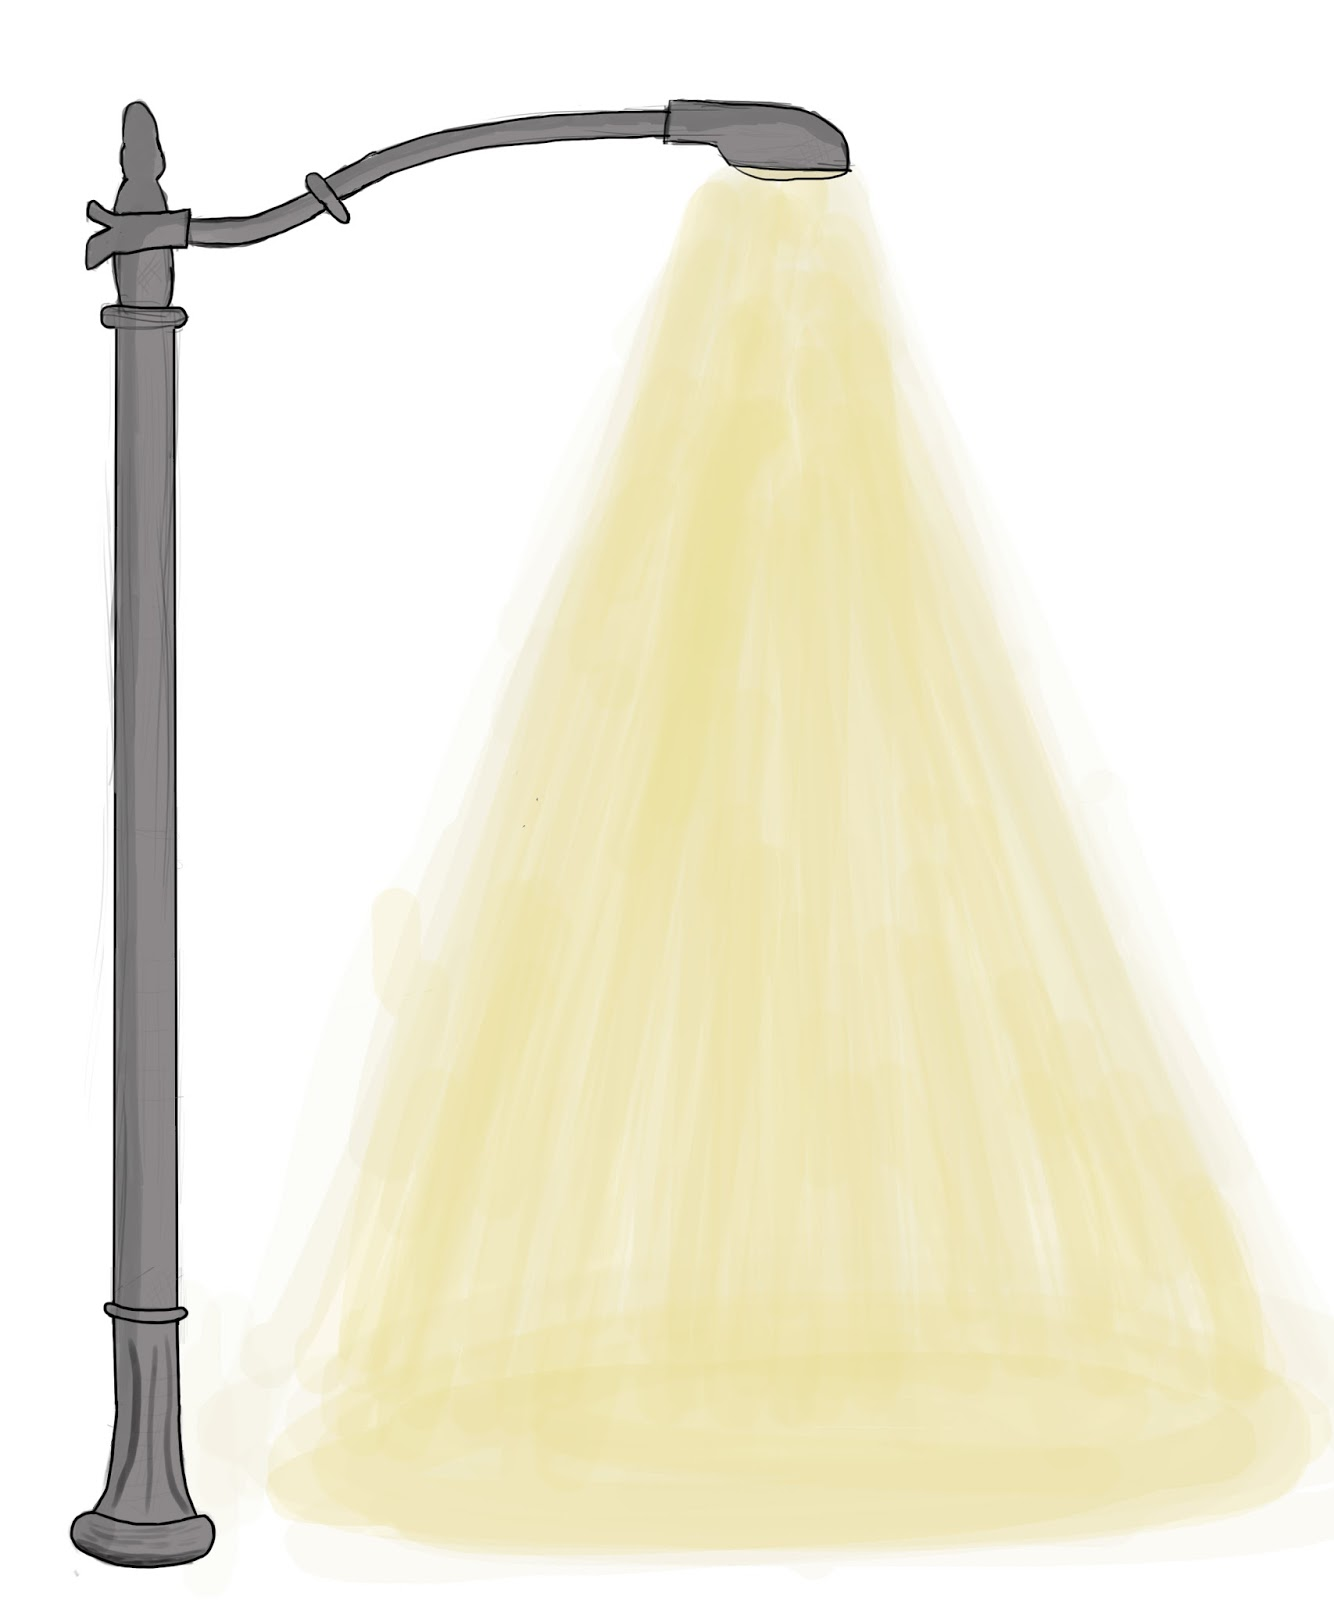 QkashDesigns for Street Lamp Drawing  14lpgtk